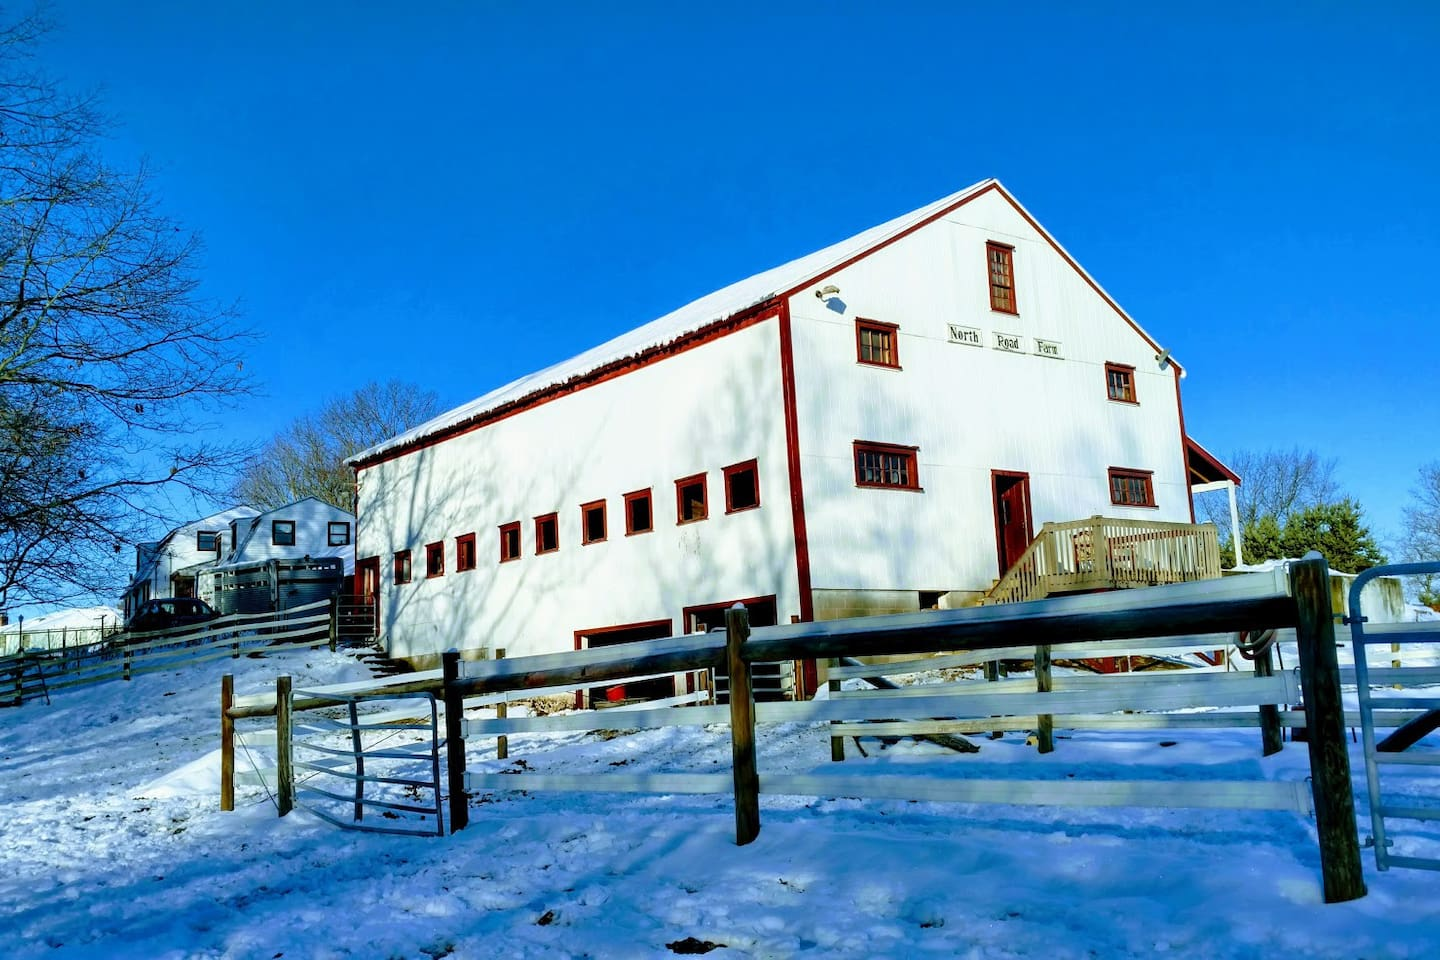 North Road Farm riding stable is an antique barn built 1805.  We renovated entire facility in 1998 with many nice upgrades.  New bunkhouse 2019.  All your creature comforts in a delightful, open sunny space.  See and experience life on a horse farm.